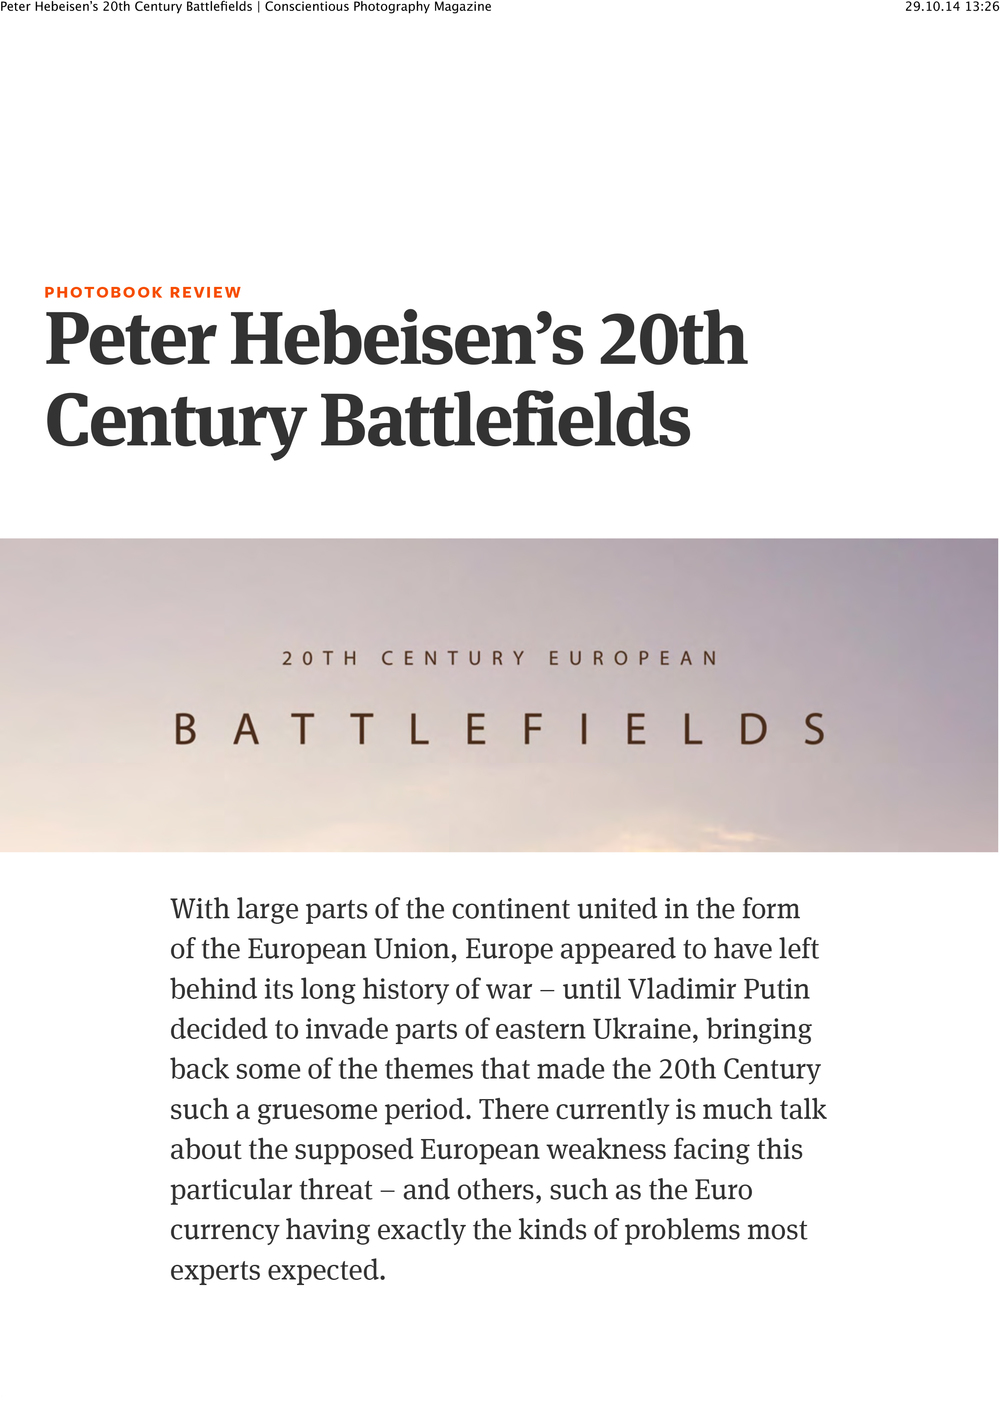 Peter Hebeisen's 20th Century Battlefields | Conscientious Photography Magazine-1.jpg